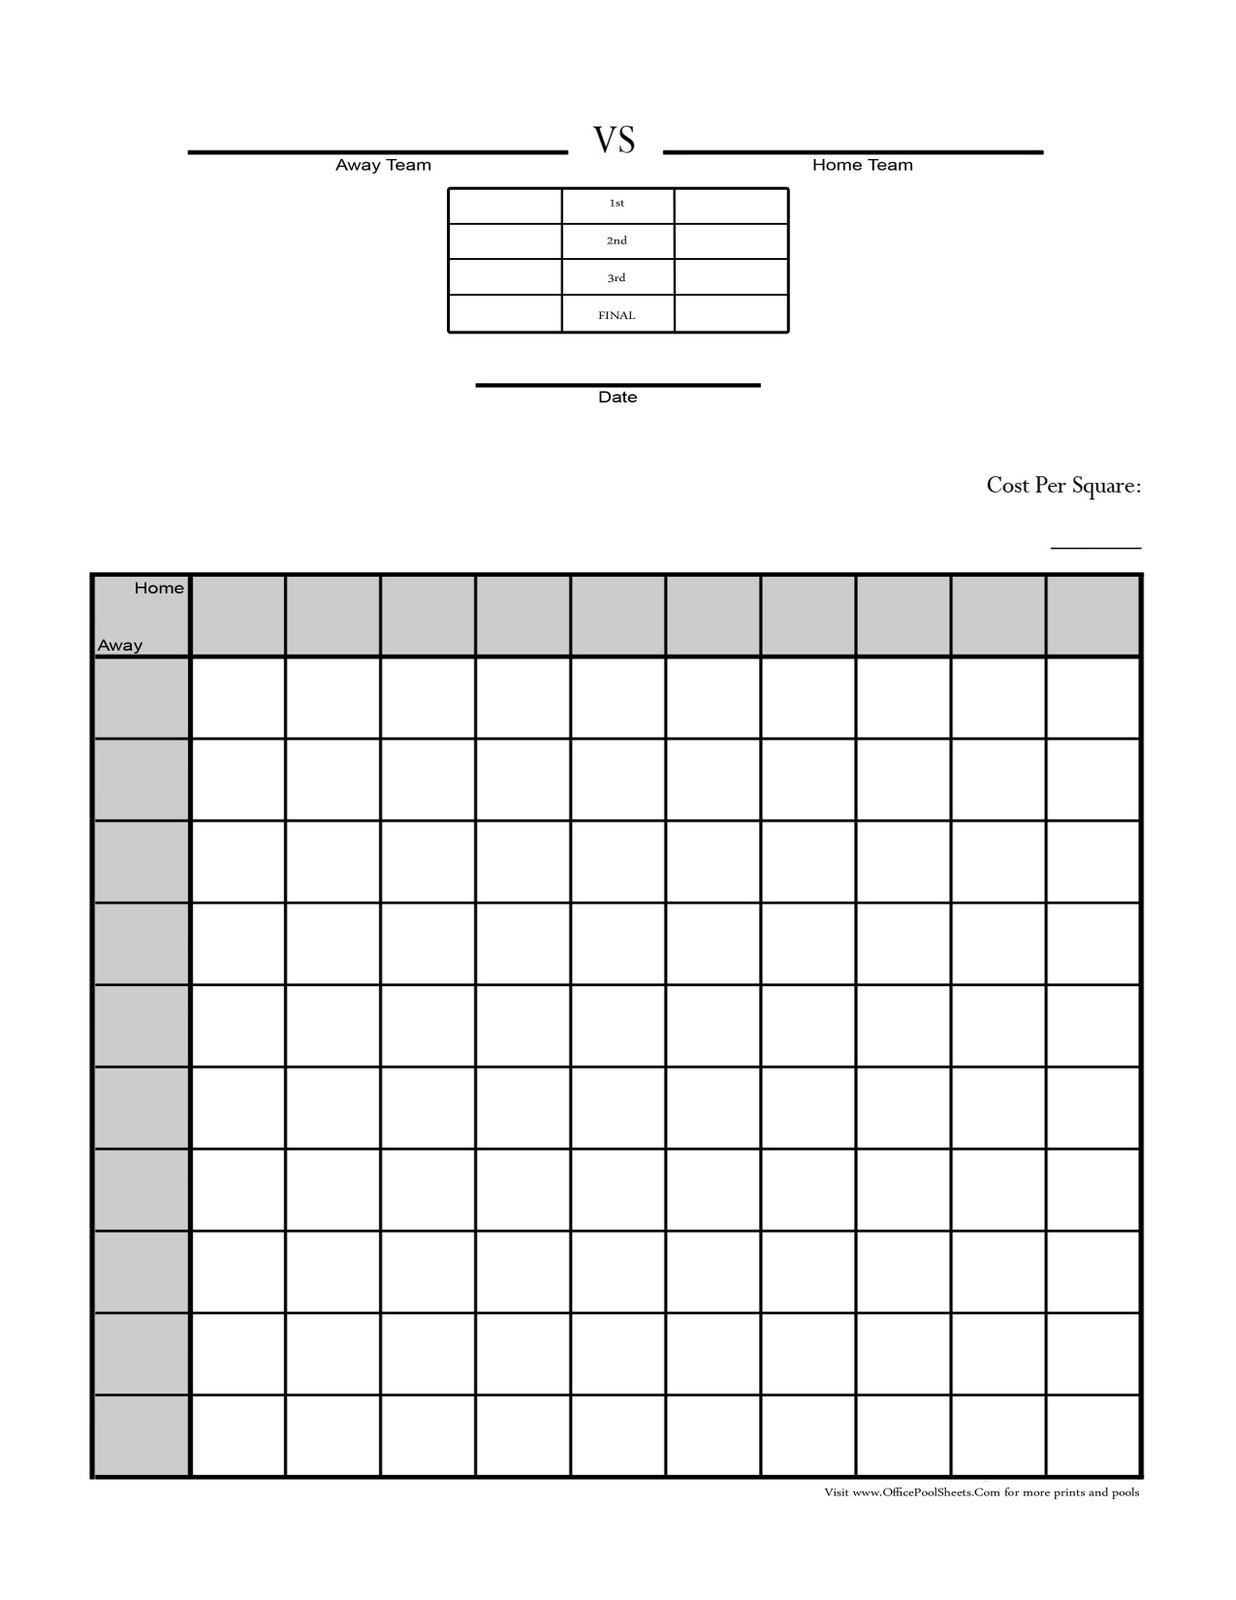 Super Bowl Football Pool Sheets Templates